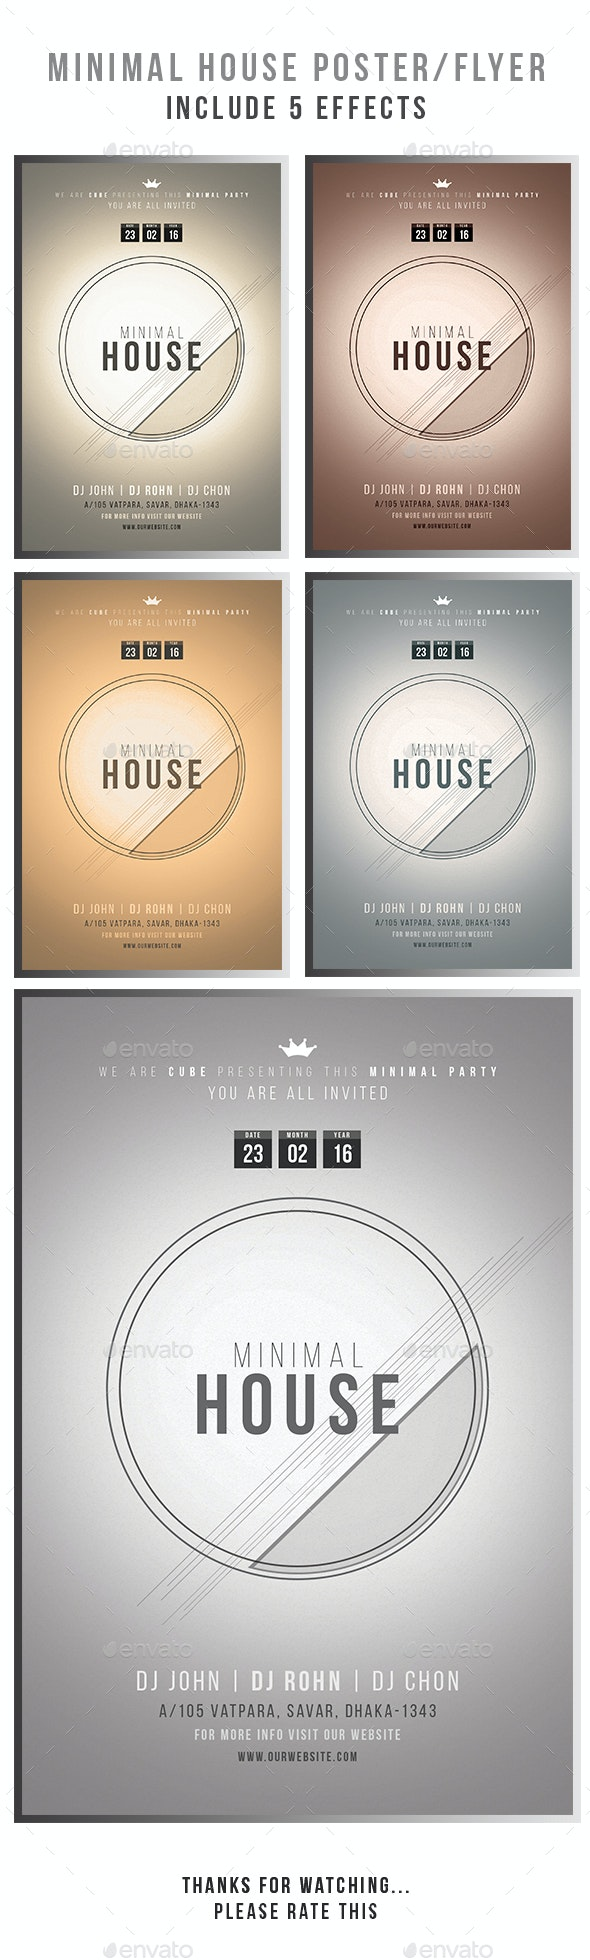 Minimal House Poster  Flyer Template - Flyers Print Templates